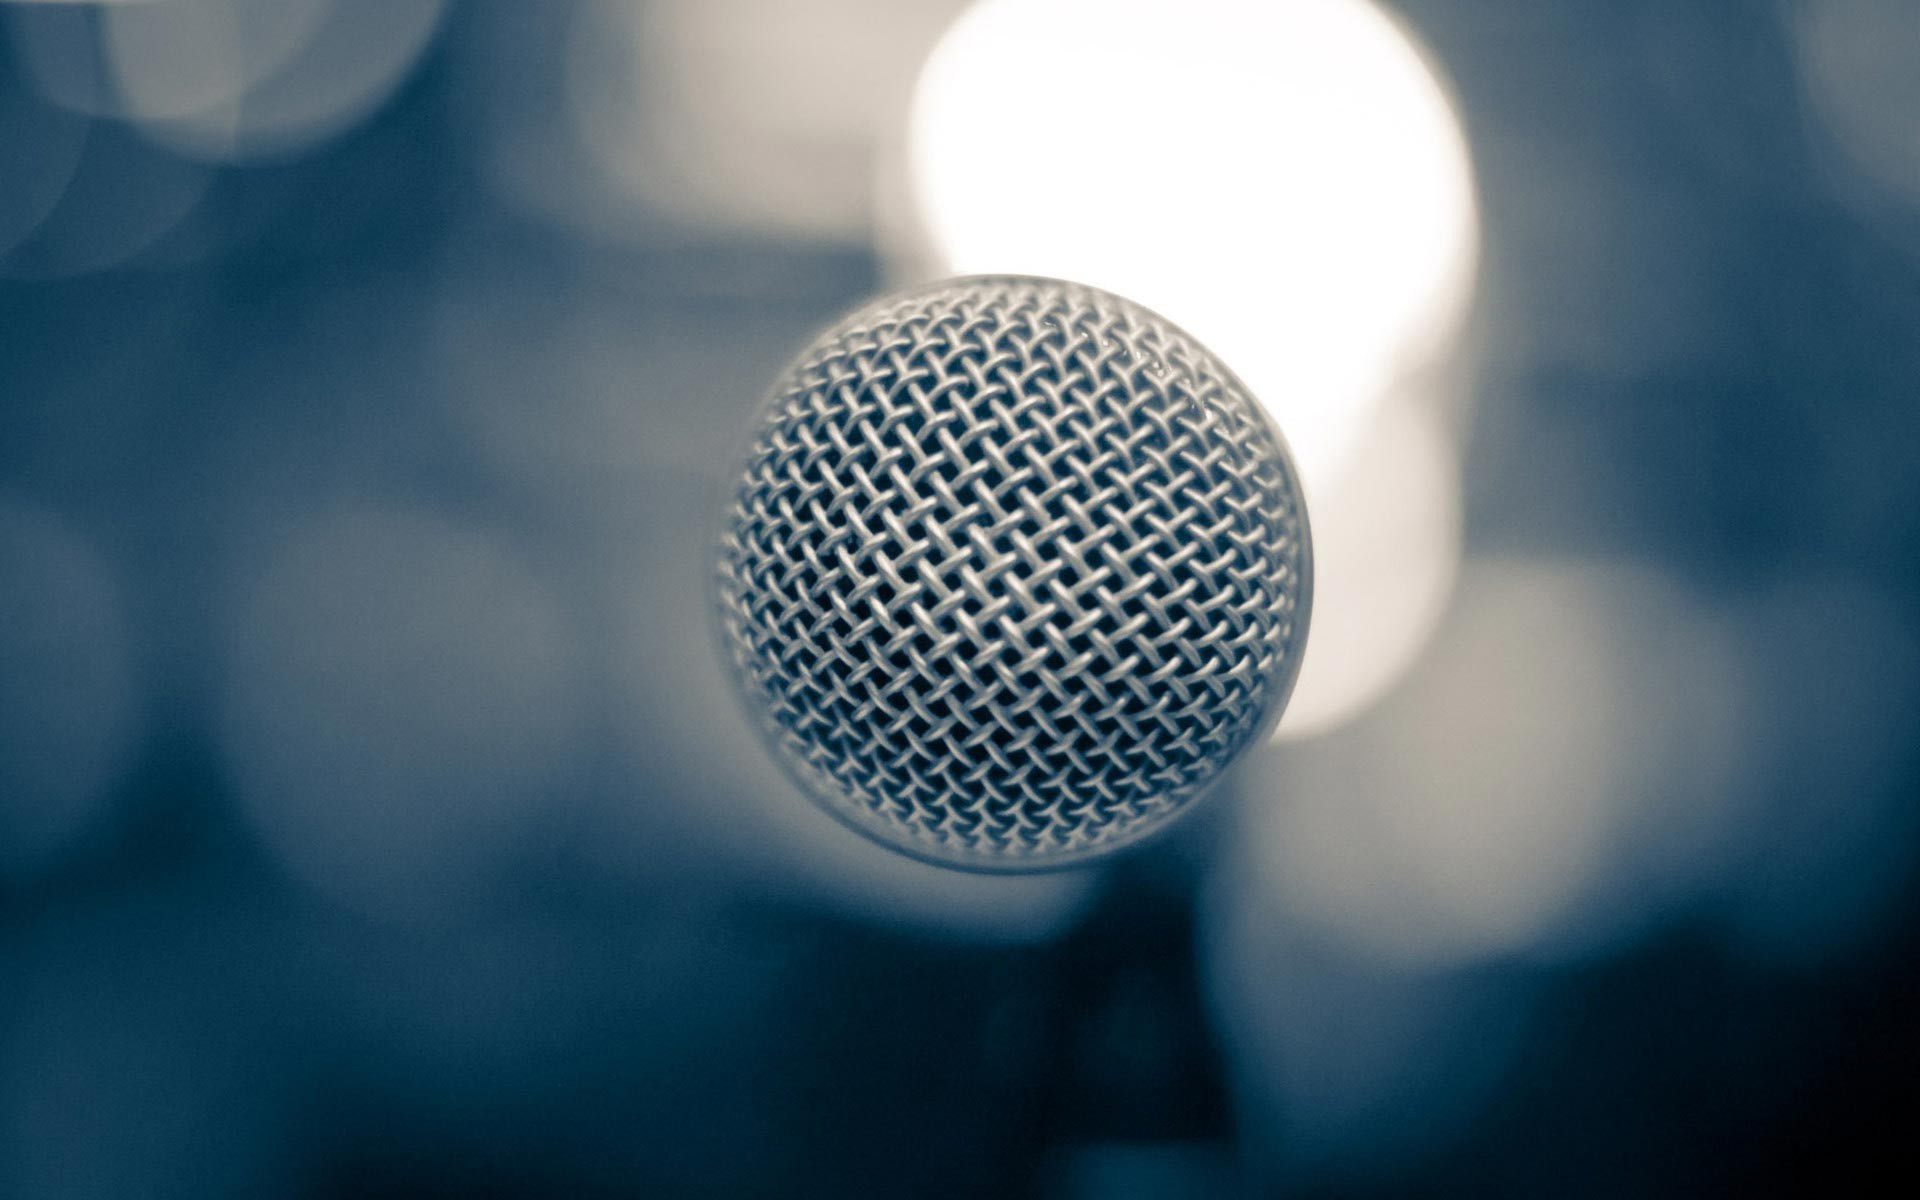 Microphone wallpapers high quality download free - Microphone wallpaper ...